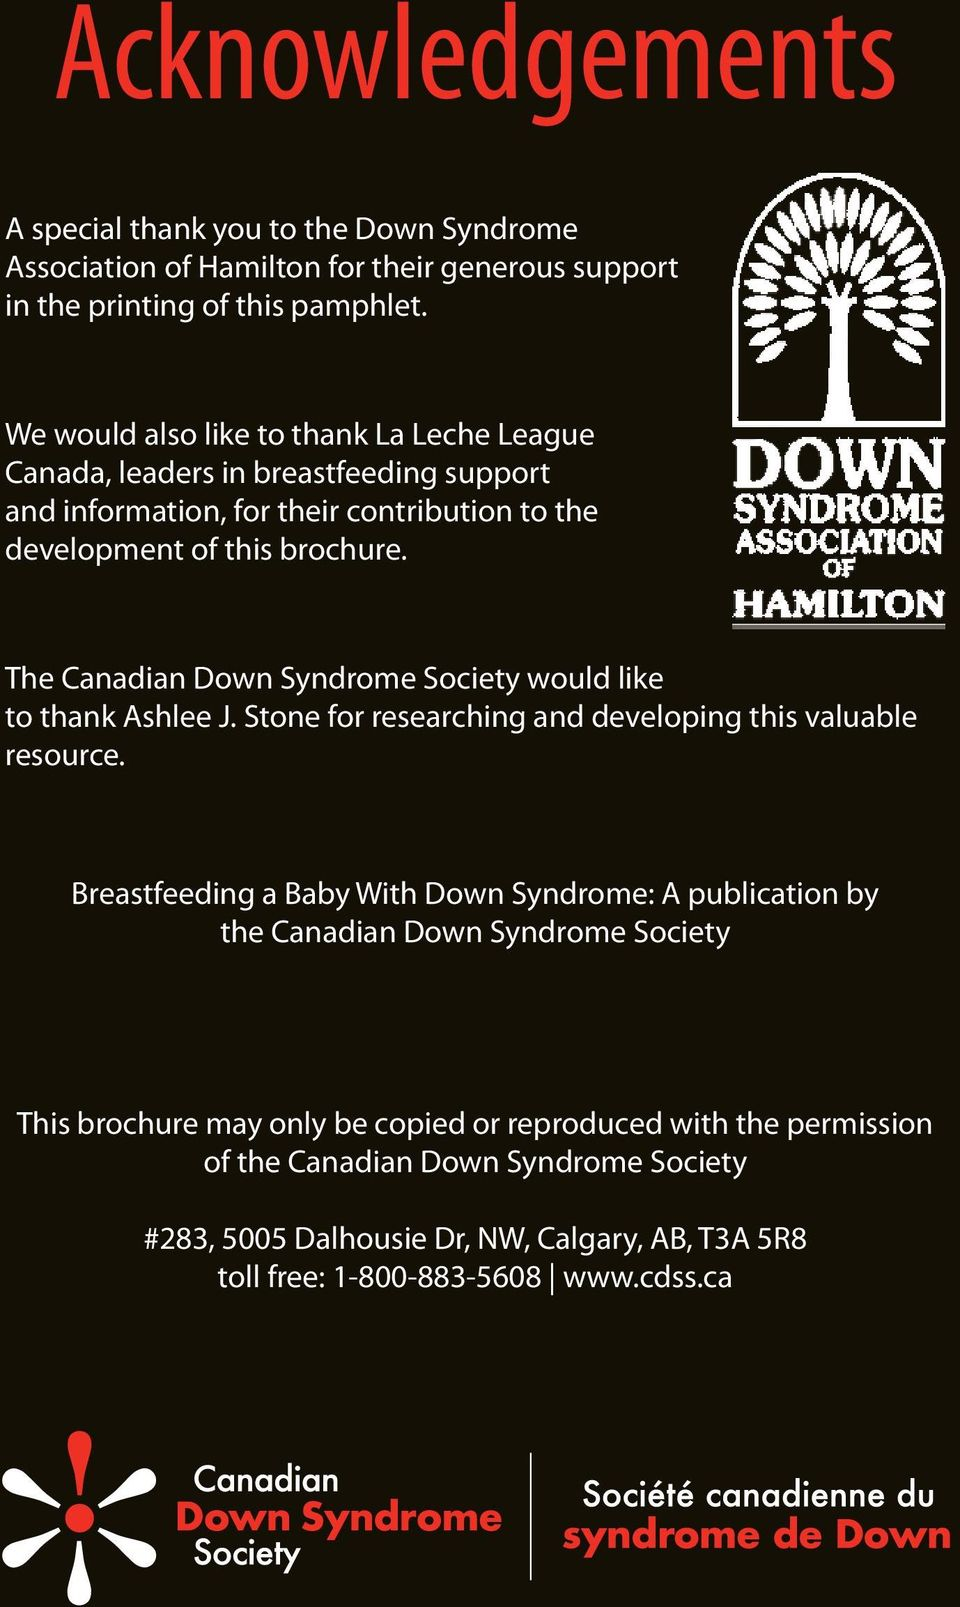 The Canadian Down Syndrome Society would like to thank Ashlee J. Stone for researching and developing this valuable resource.